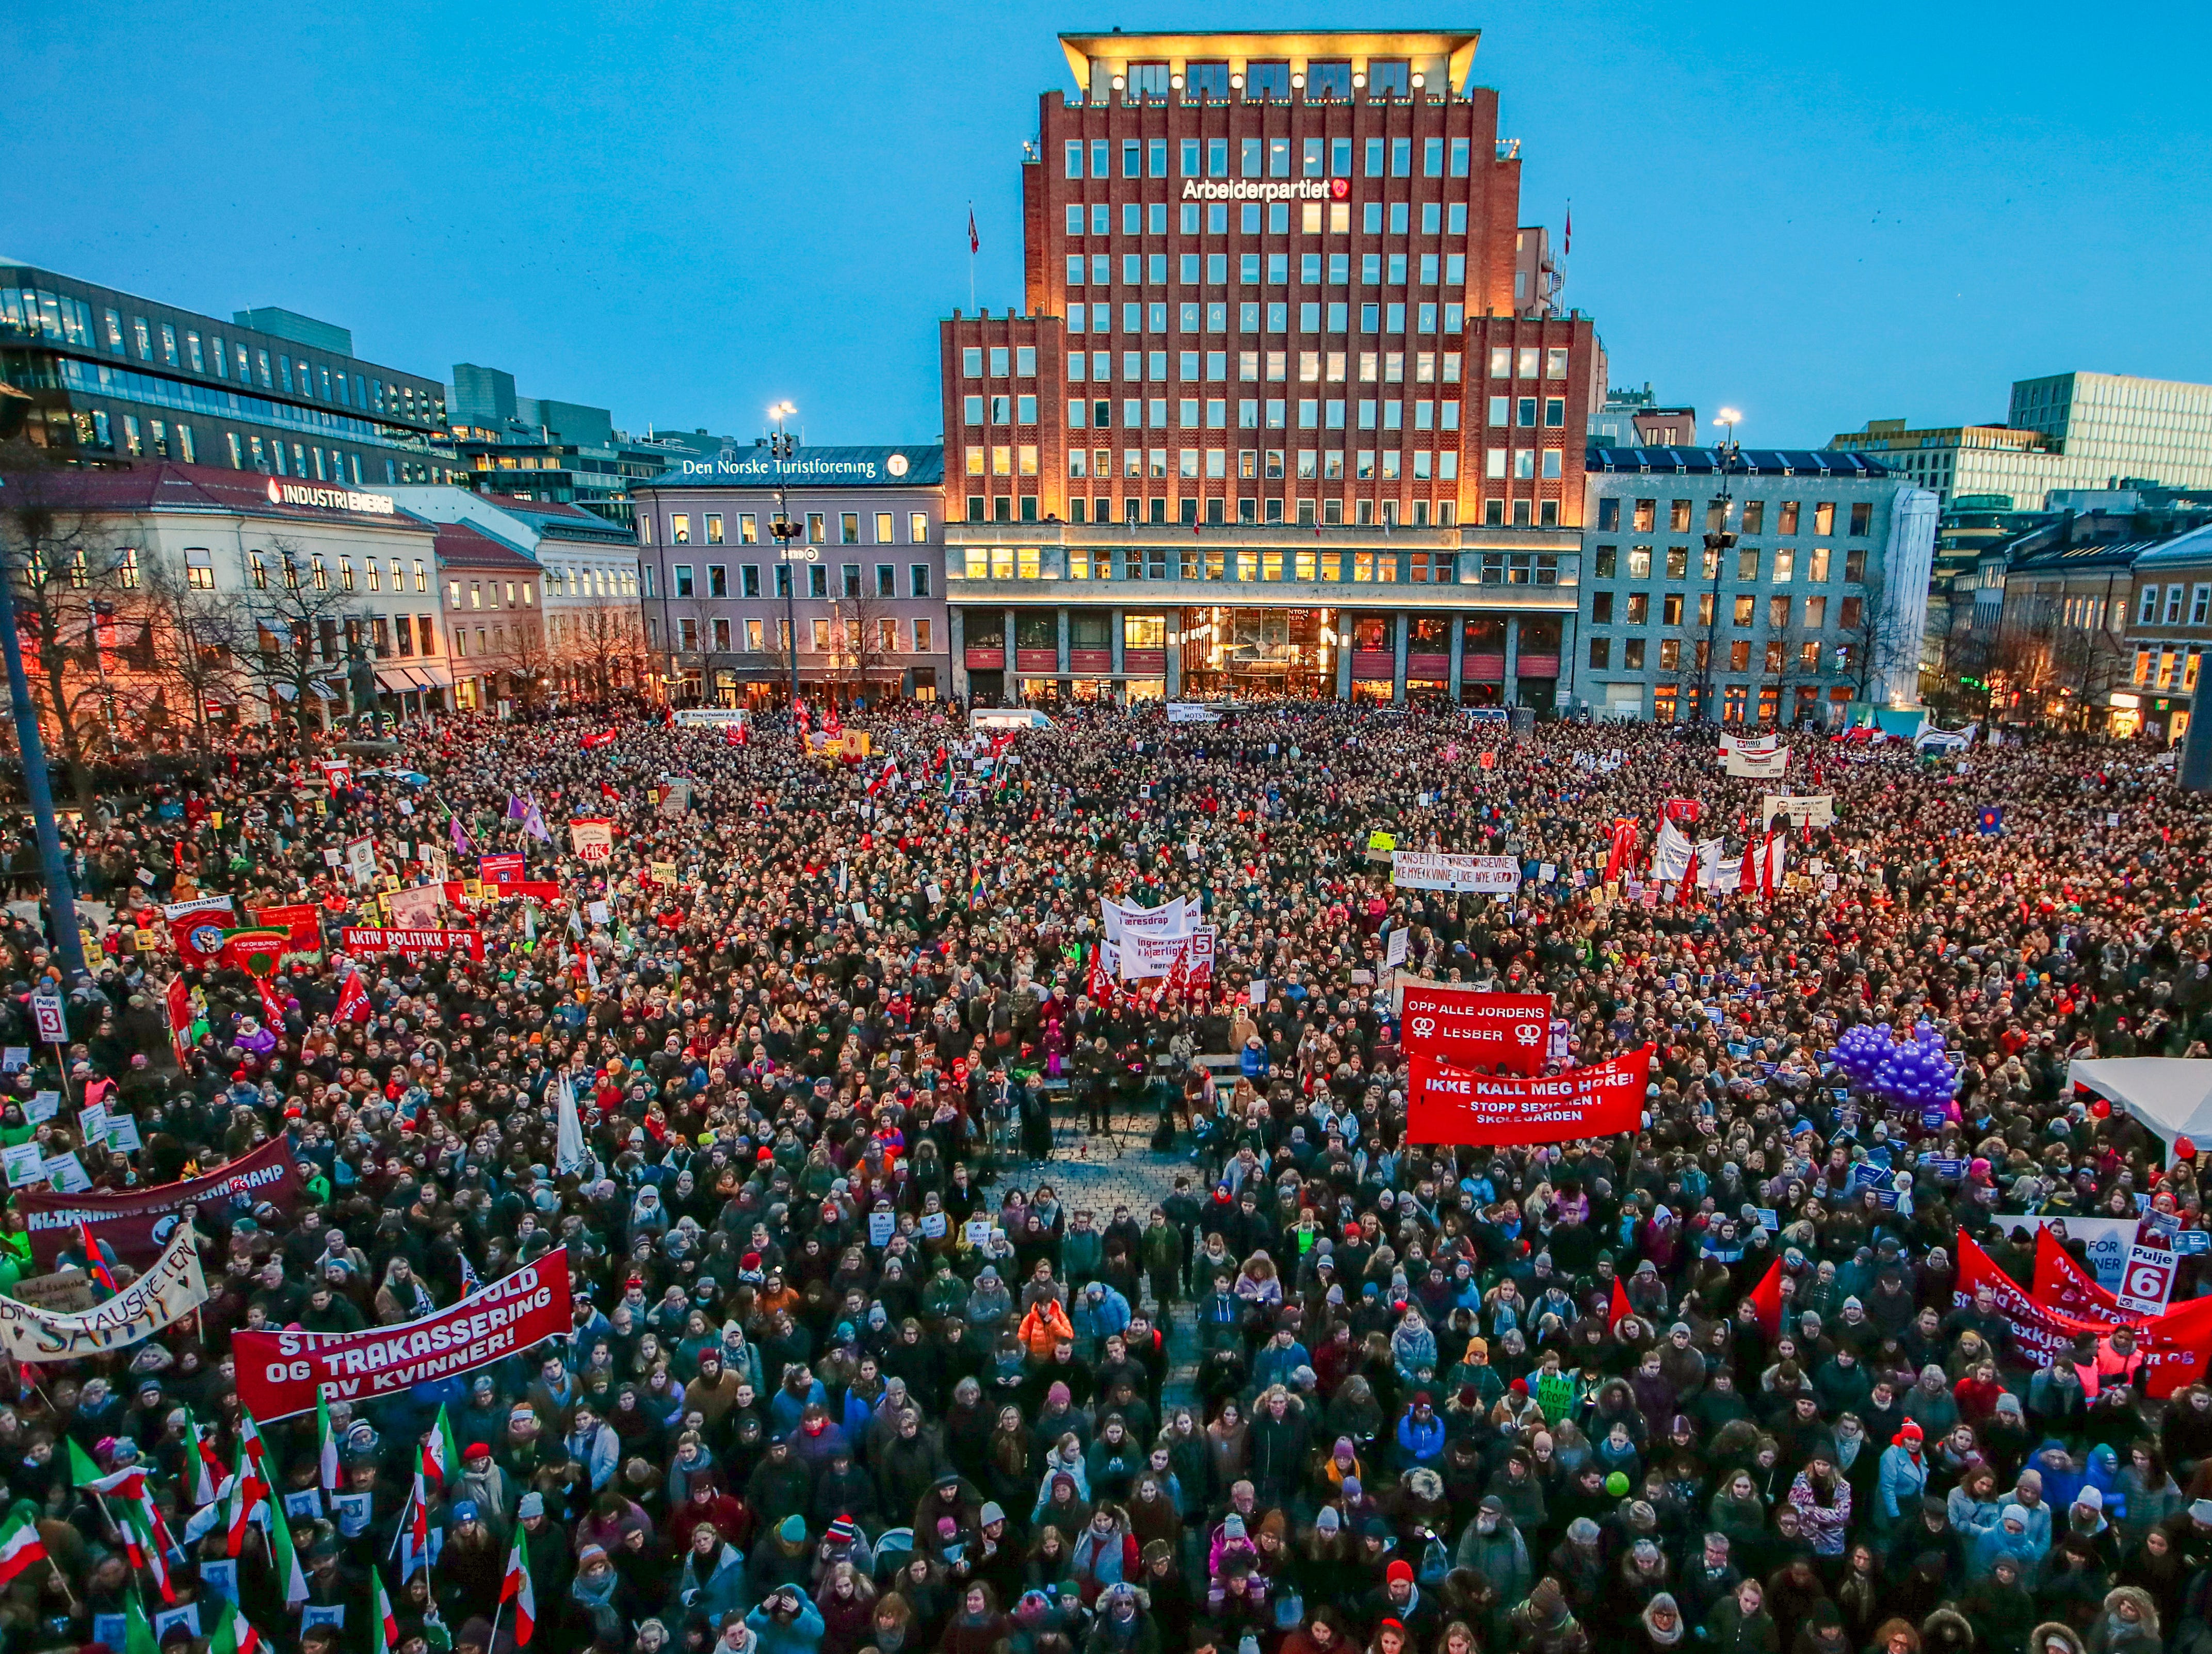 Several thousand people gather to take part in demonstration on International Women's Day in Oslo, Friday, March 8, 2019. (Hakon Mosvold Larsen/NTB Scanpix via AP)